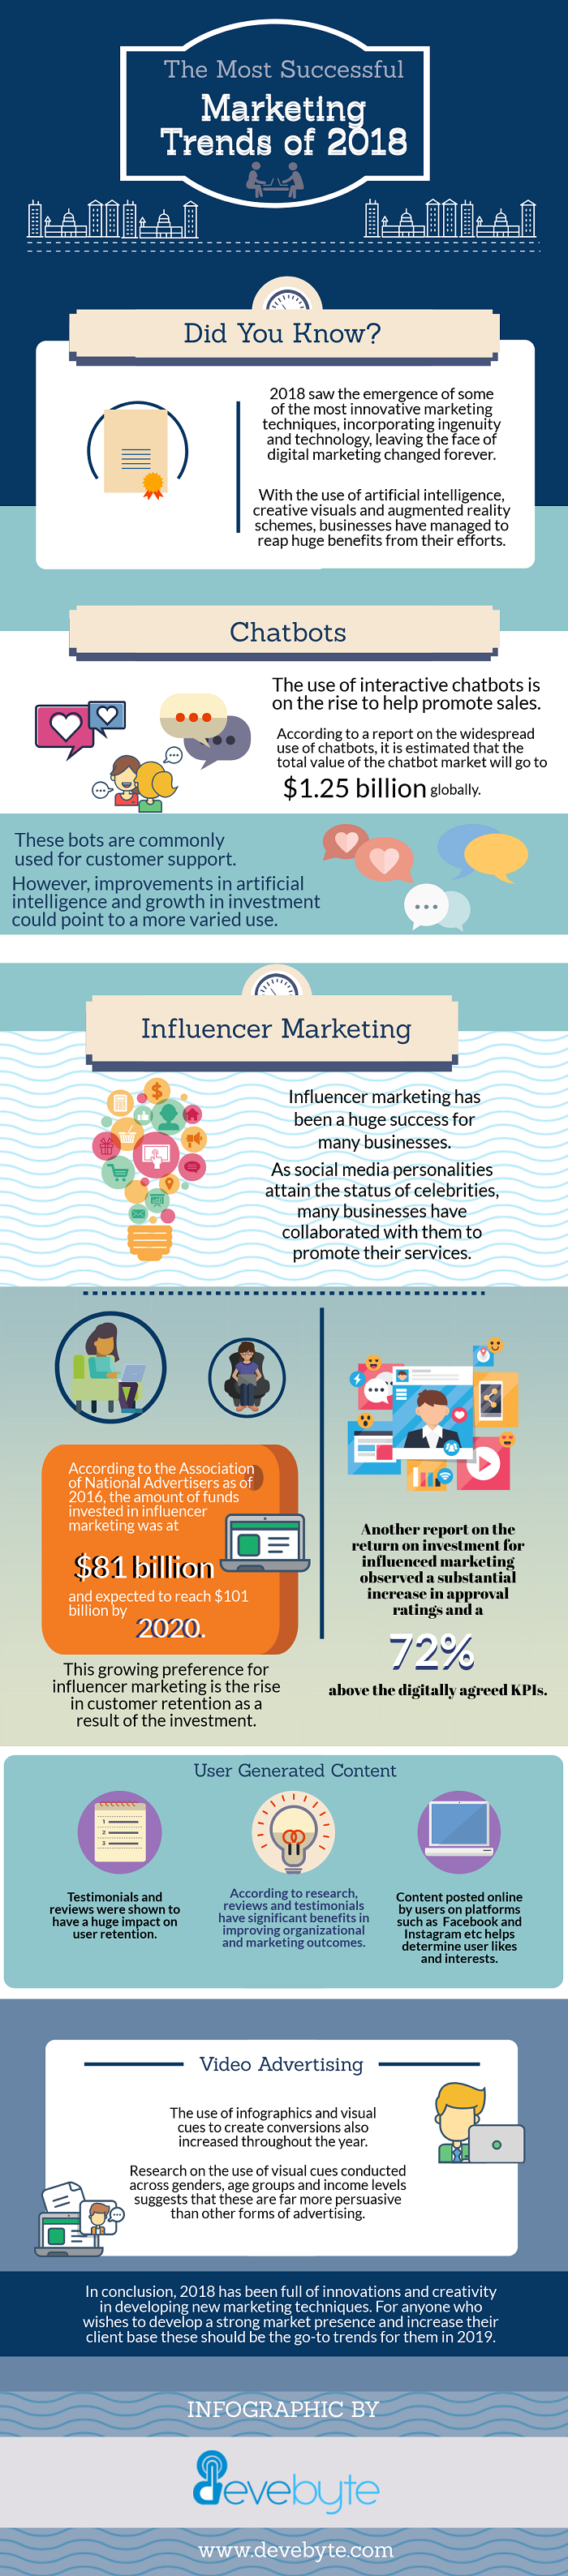 The Most Successful Marketing Trends of 2018 Infographic